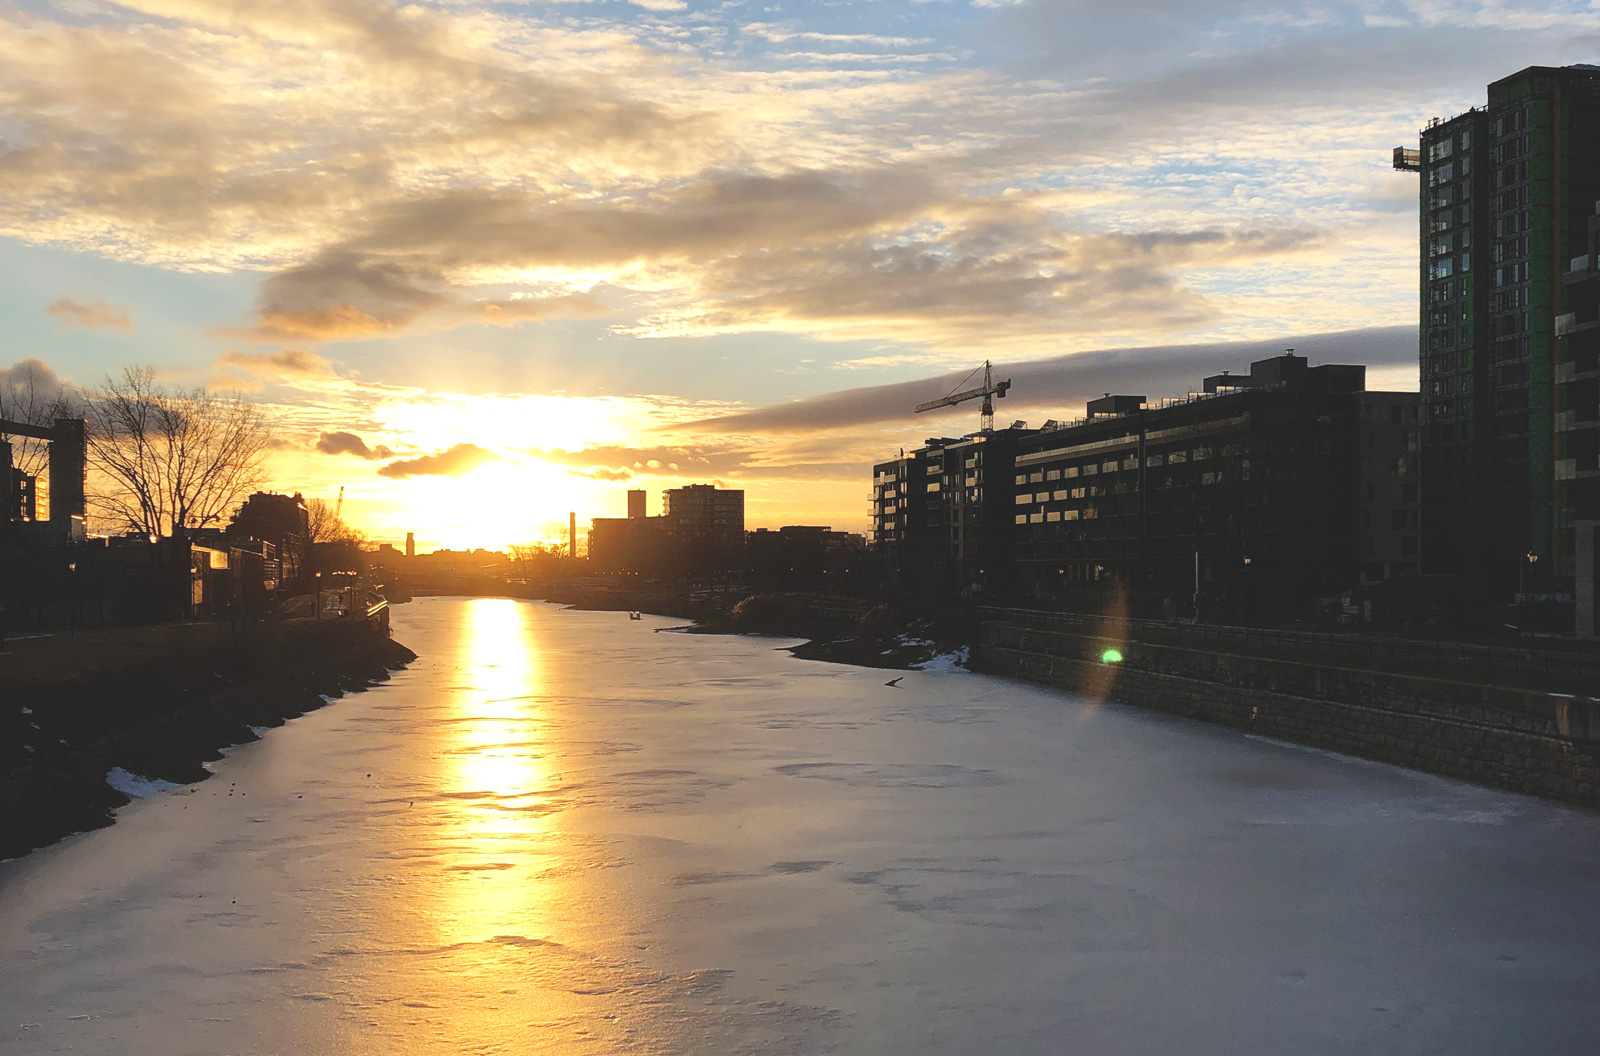 montreal state - winter